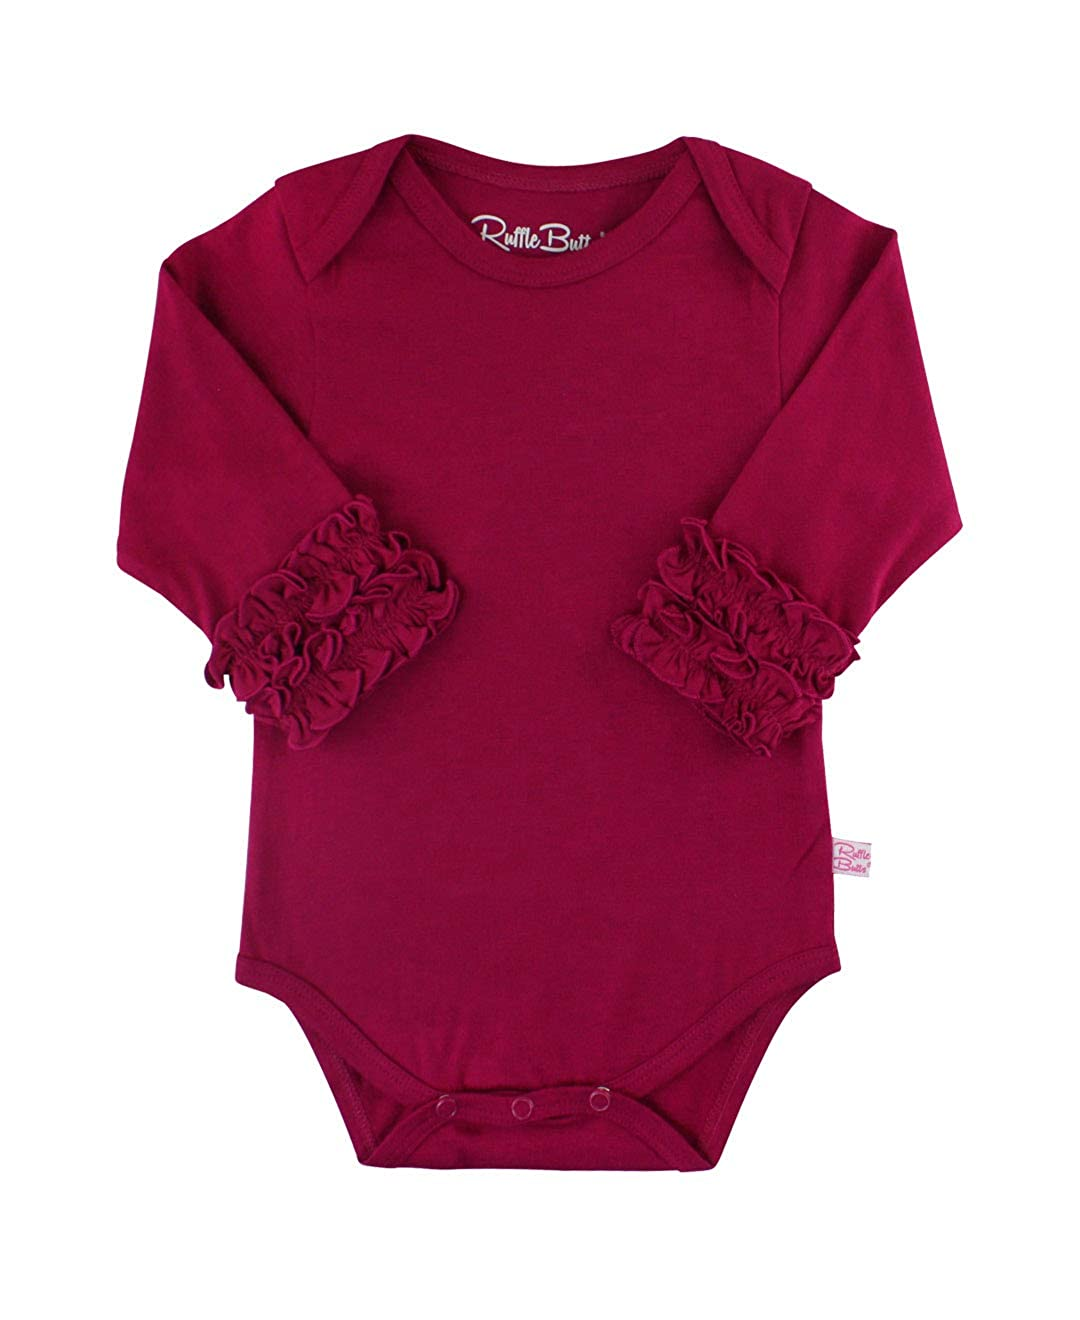 RuffleButts Baby/Toddler Girls Long Sleeve One Piece Under Bodysuit ONMYYXX-LONG-SC-BABY